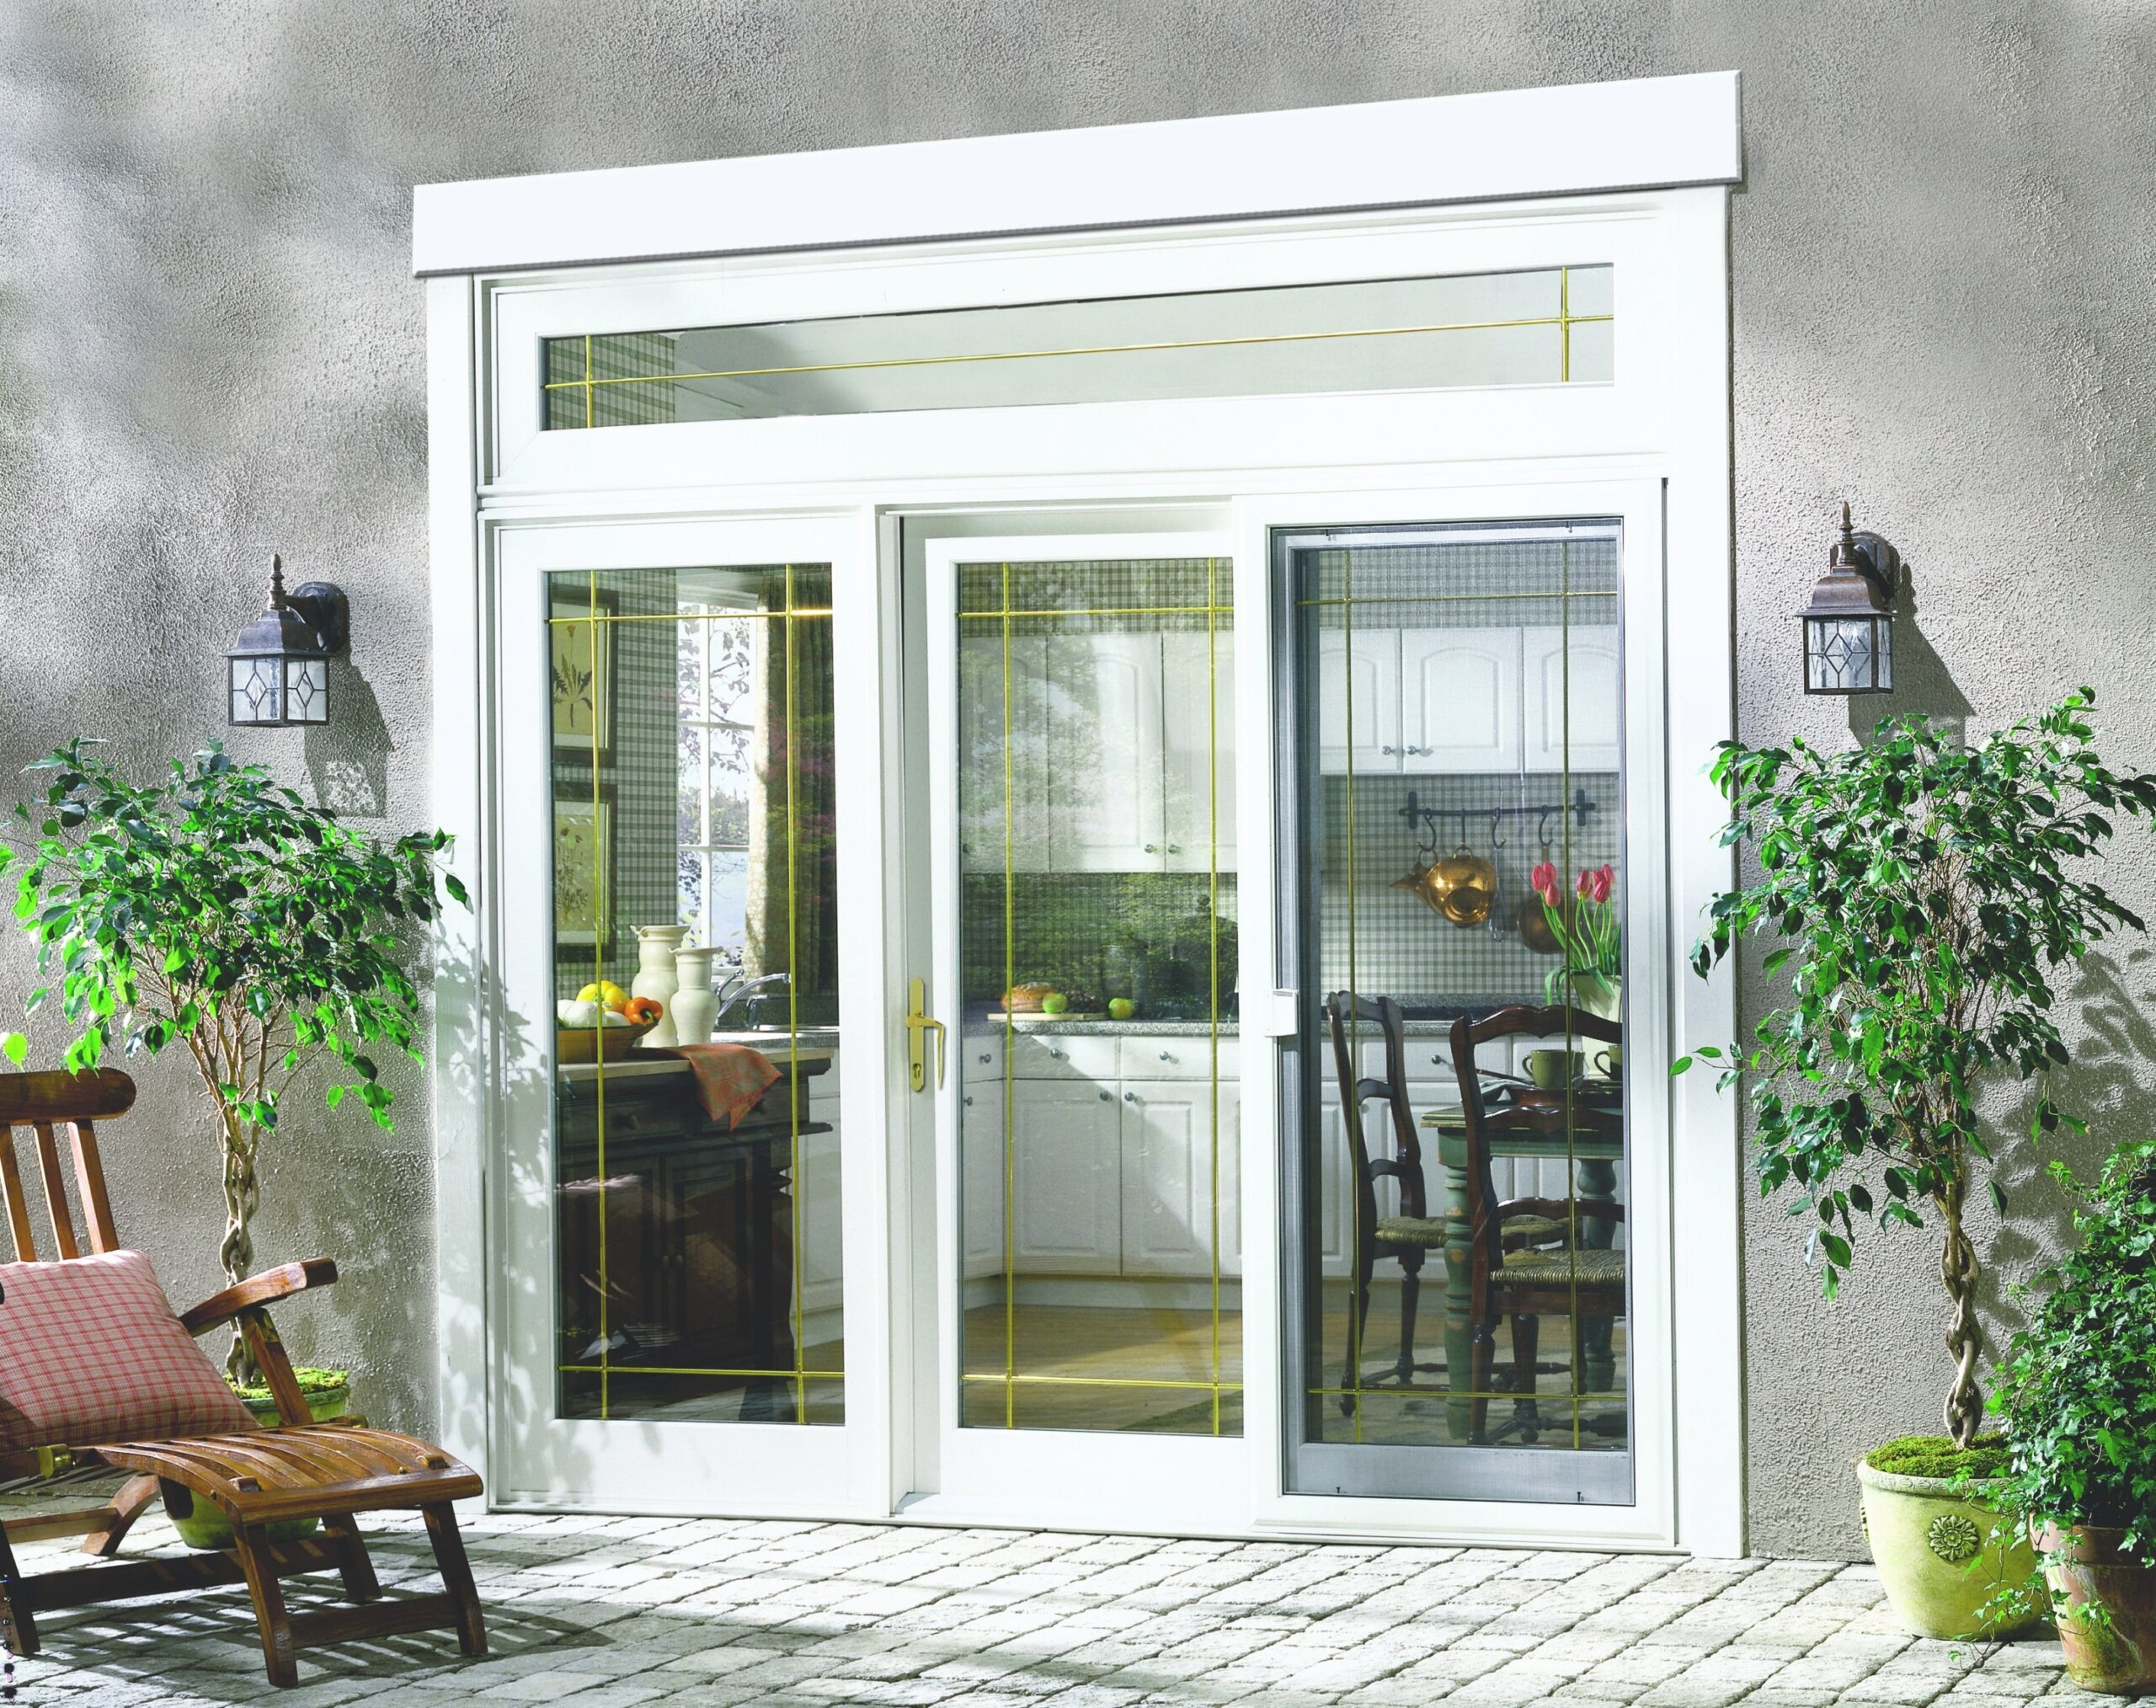 Patio Backyard French Doors Sliding Door Screen Anderson regarding Exterior Door With Built In Pet Door Lowes